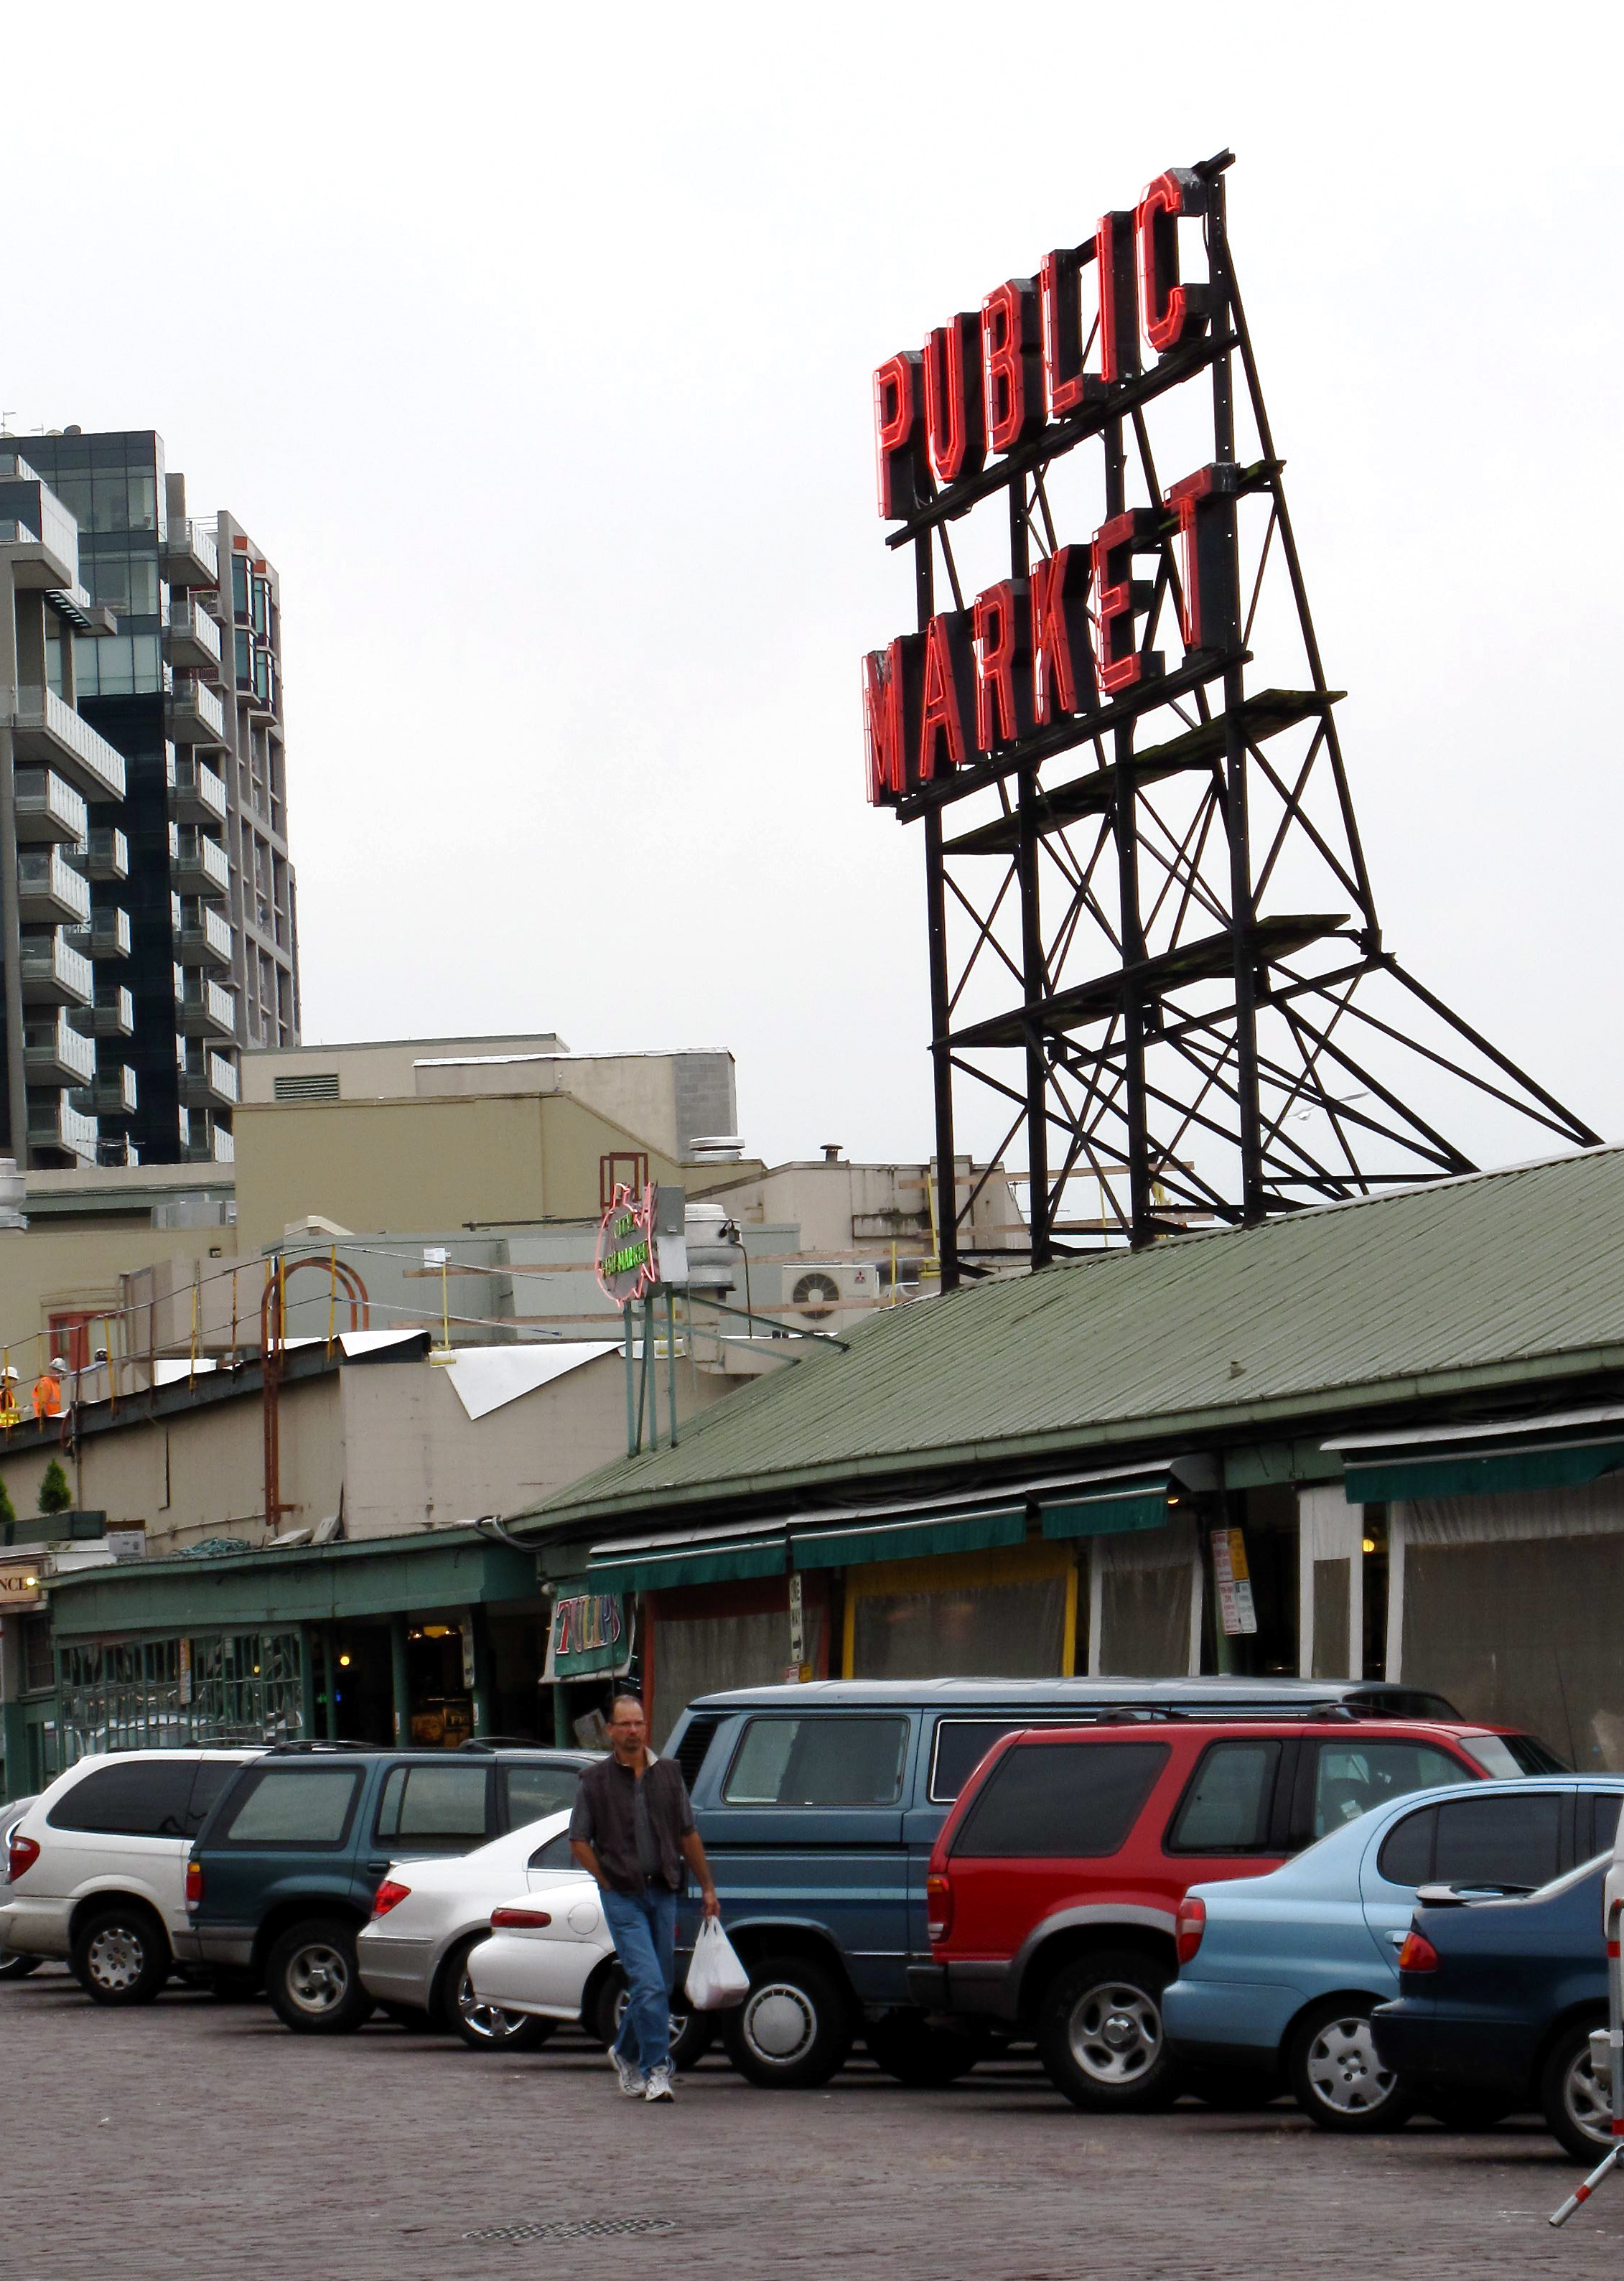 Store number one directly across from the covered stalls at Seattle&#039;s famed Pike Place Public Market.